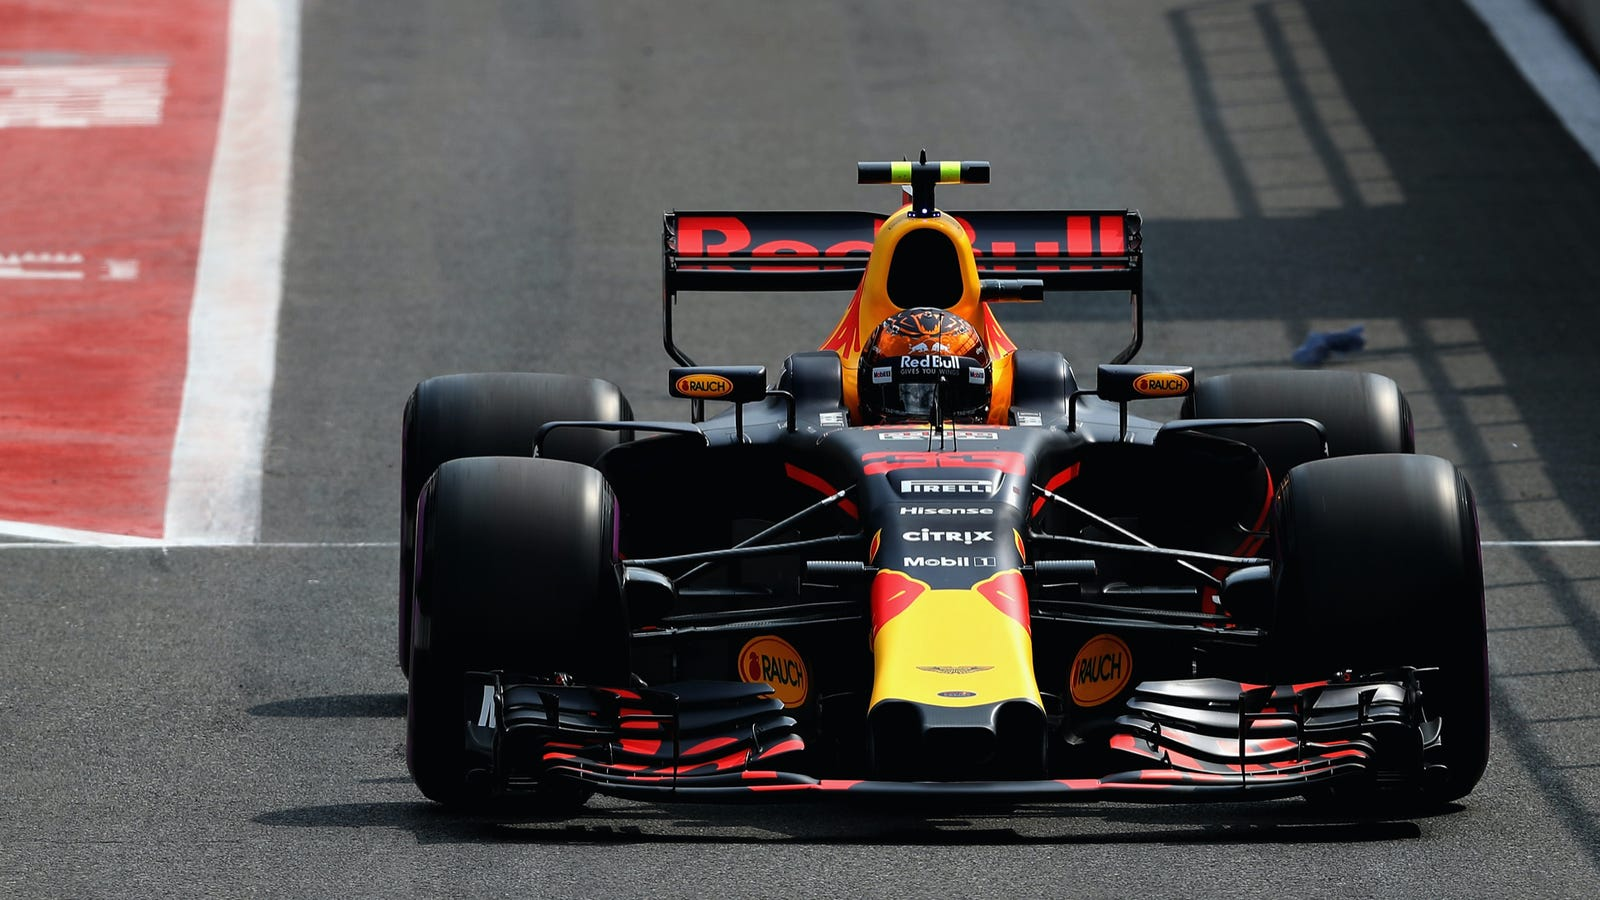 Max Verstappen Only Makes It 8 Laps Into His Home F1 Race Before Retiring